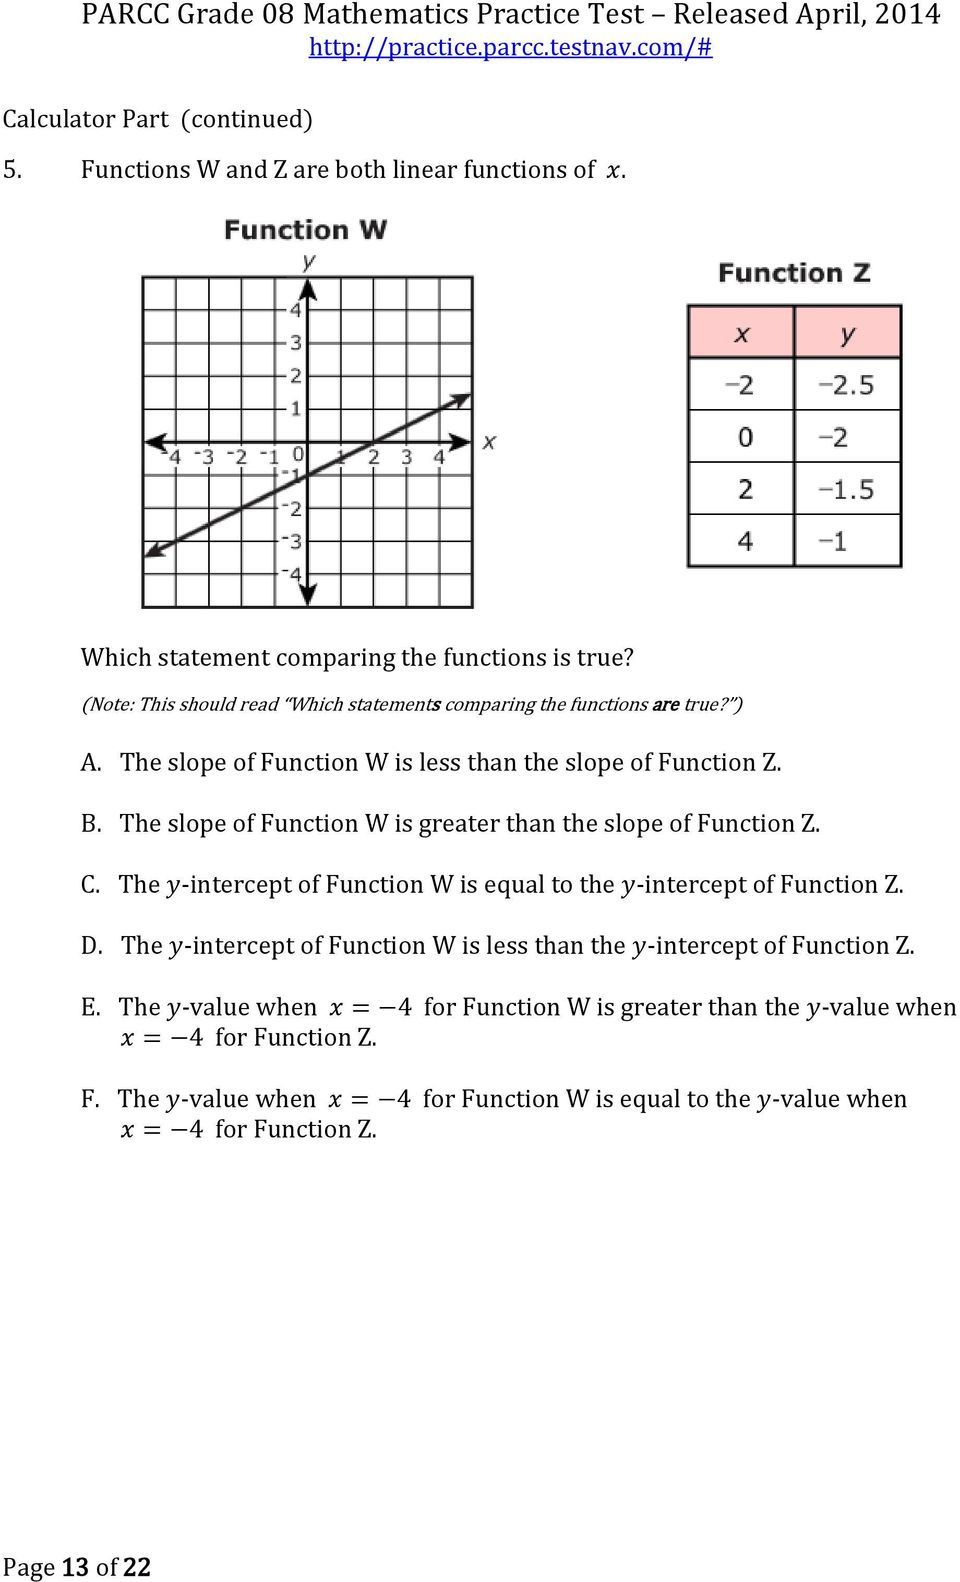 Parcc Math Spring 2017 Algebra 1 Released Items Answers